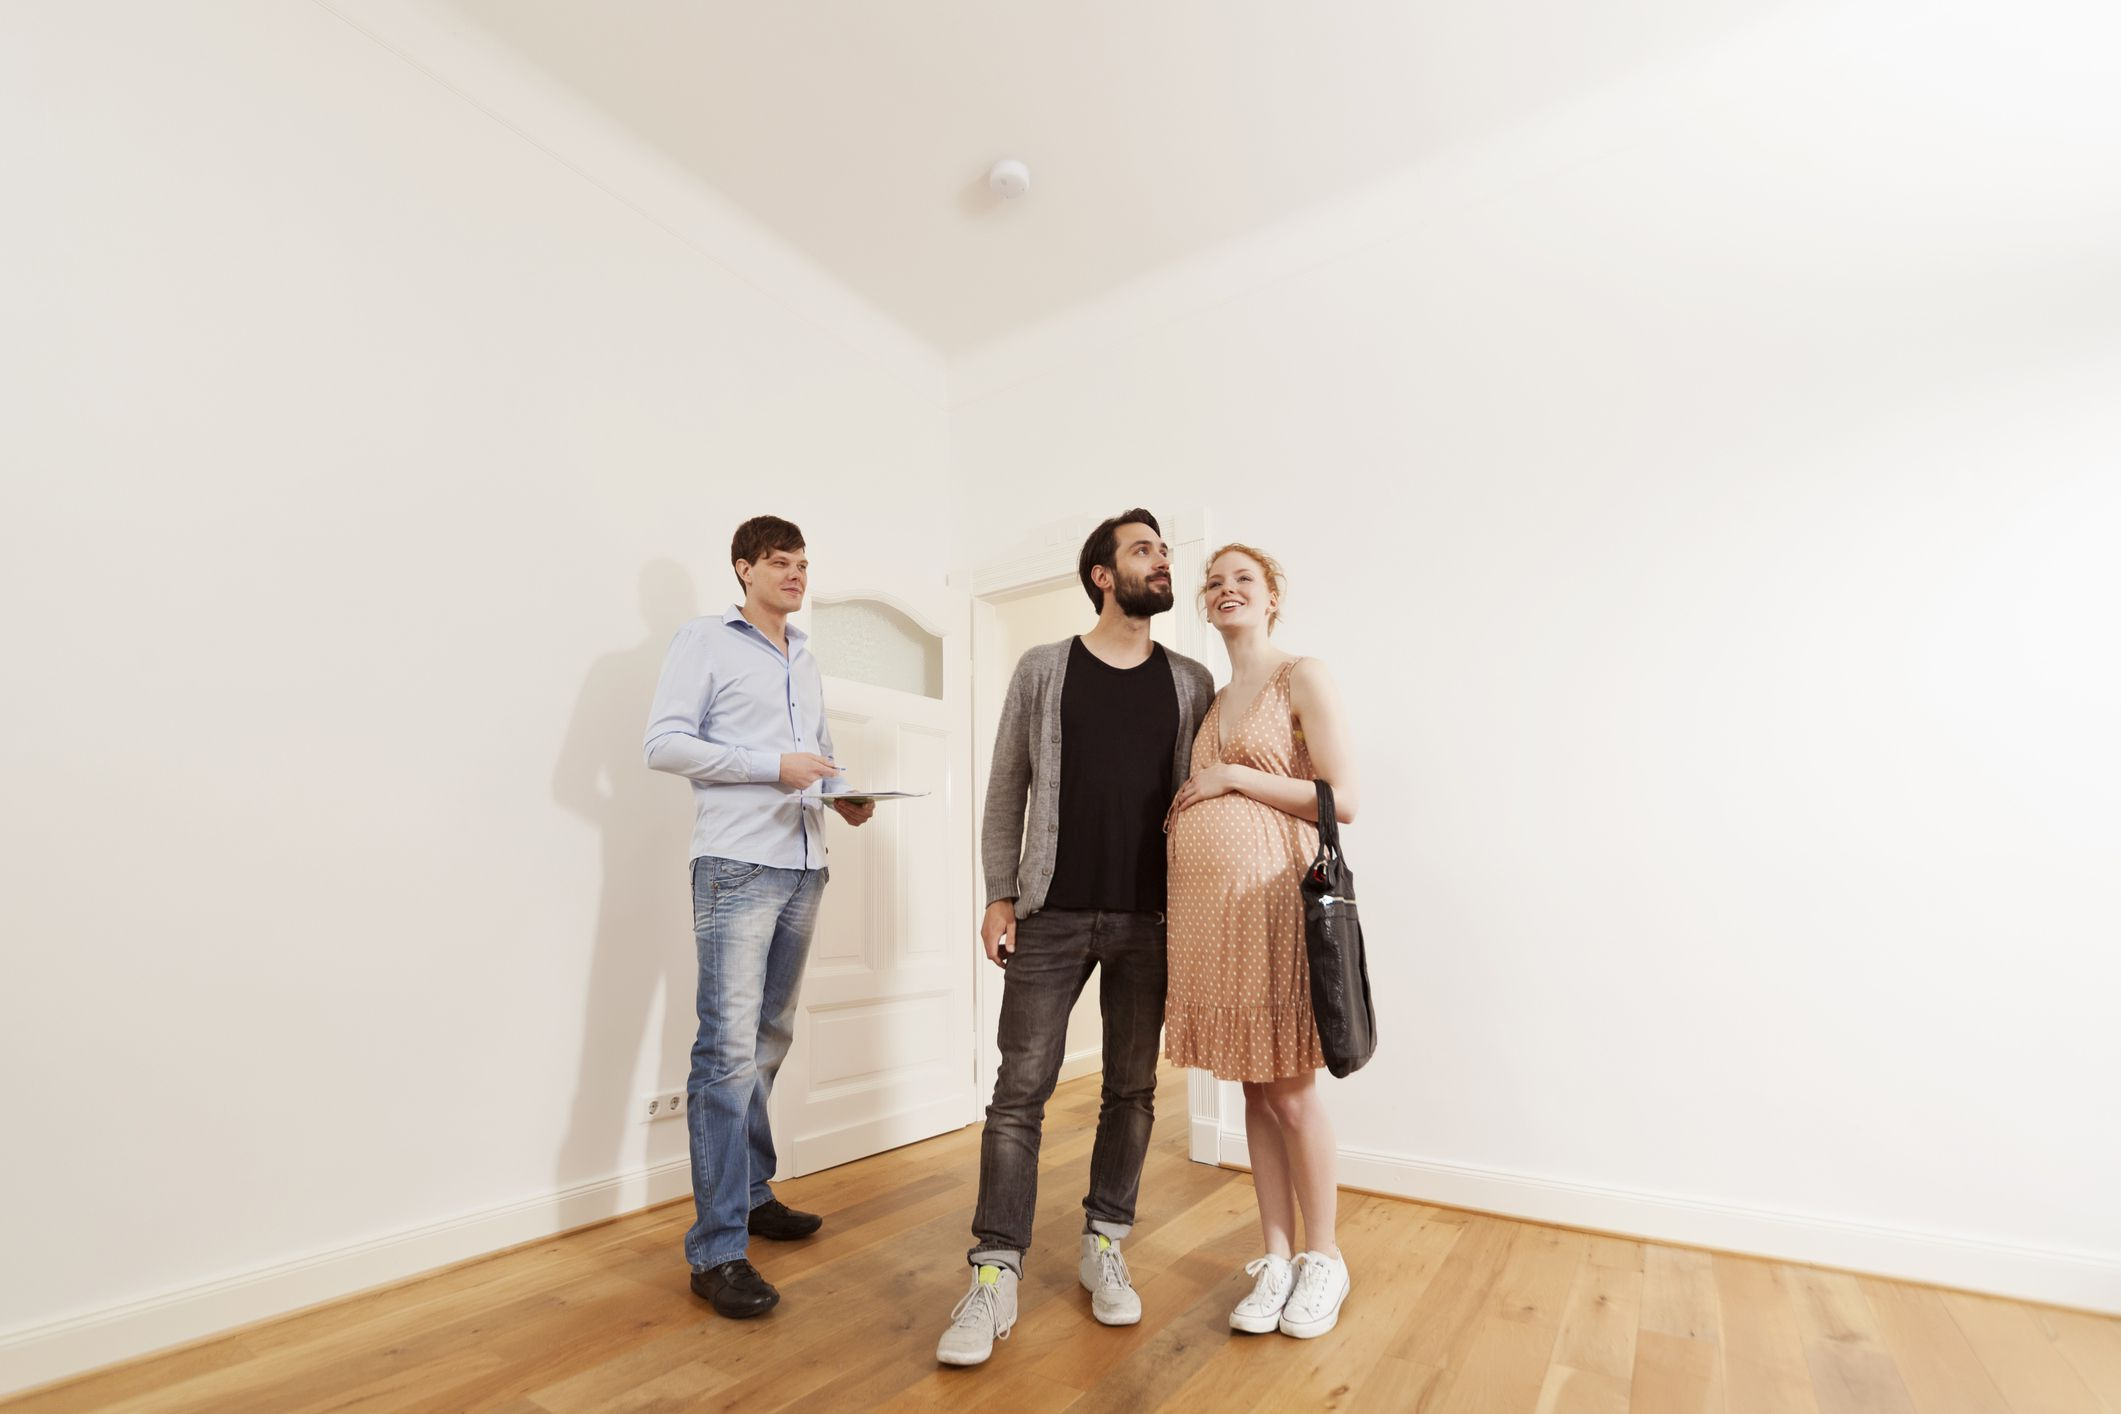 A Landlord S Checklist For New Tenants